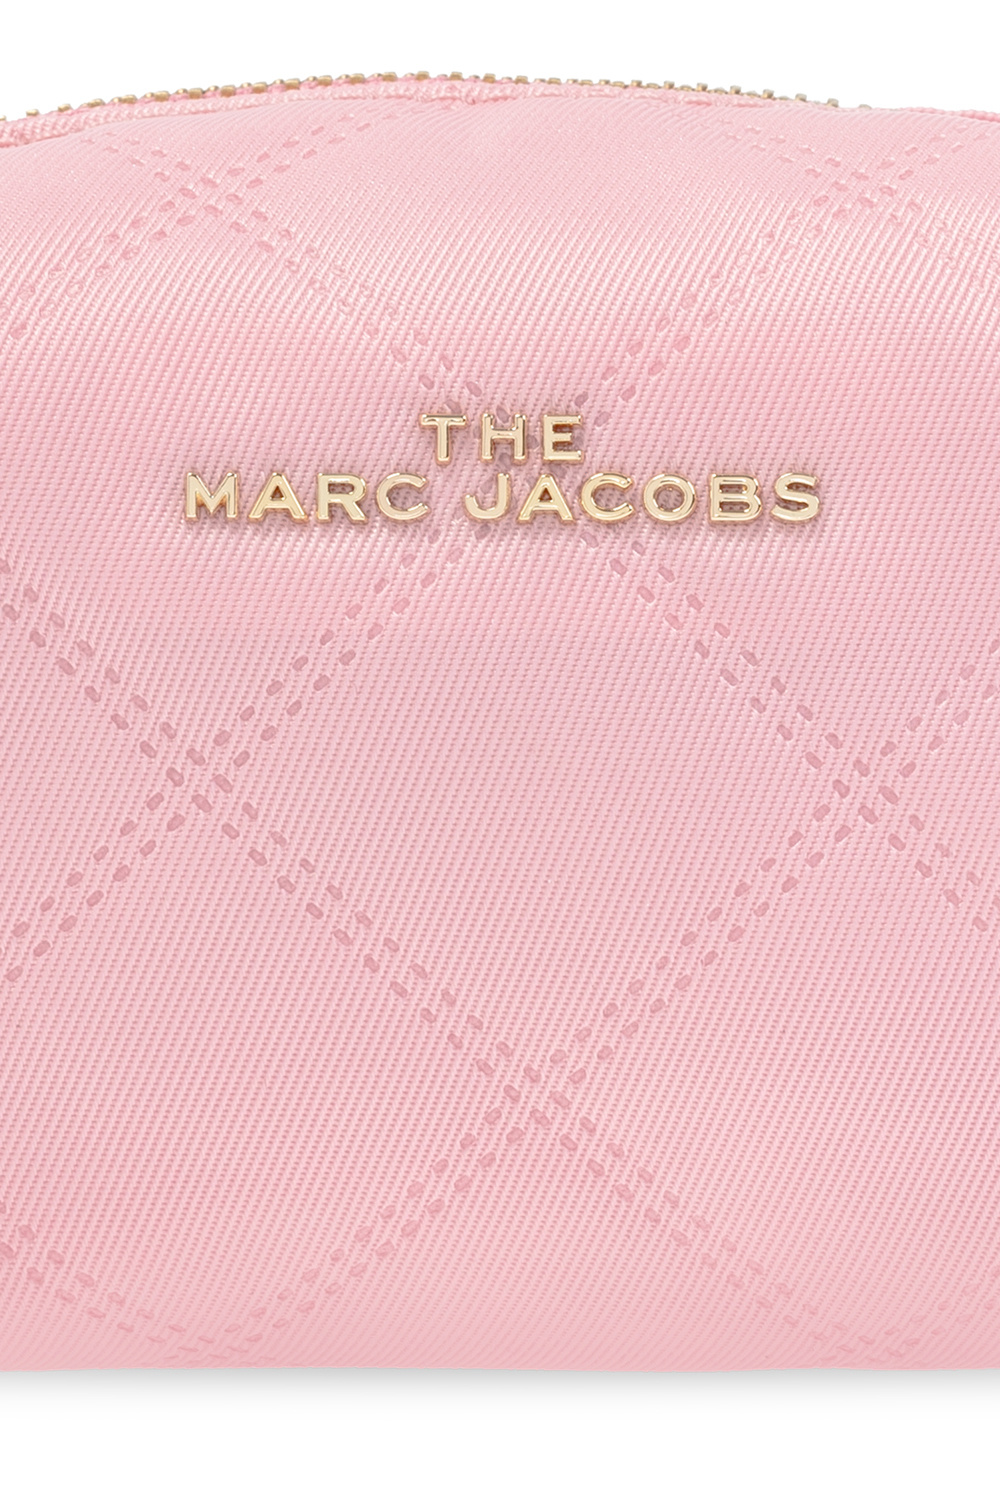 Marc Jacobs (The) Wash bag with logo